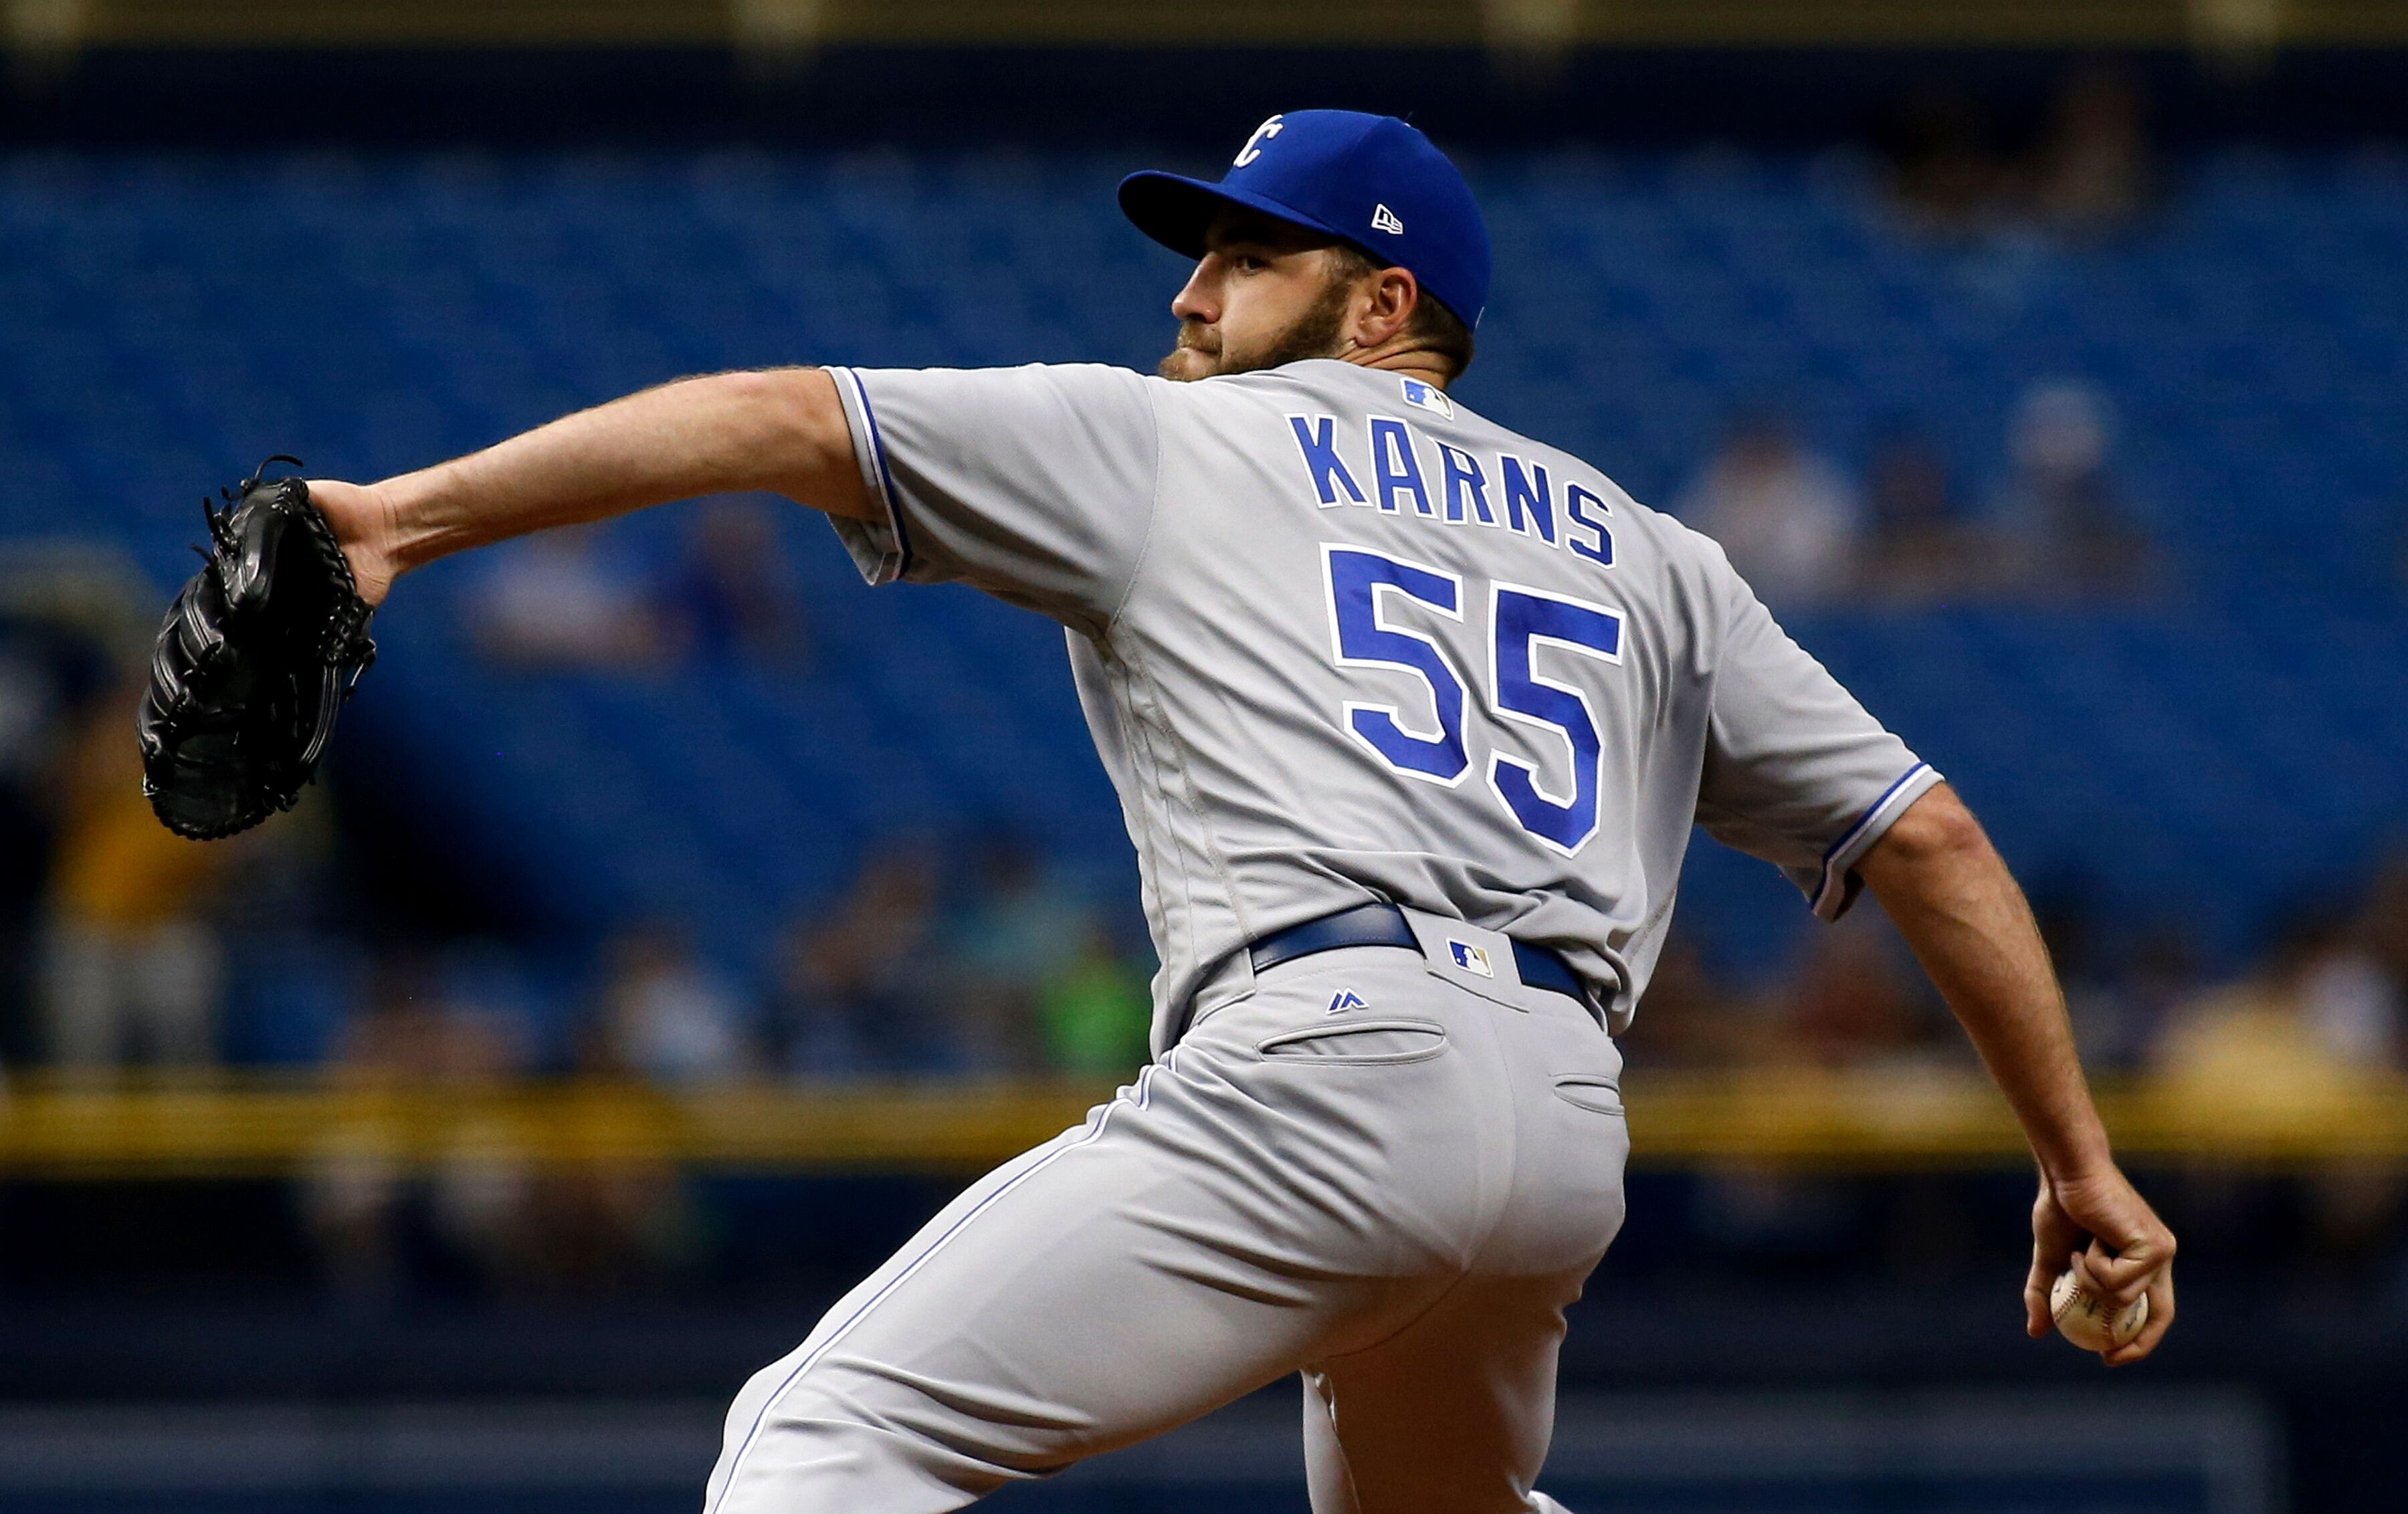 Image result for Nate Karns Royals